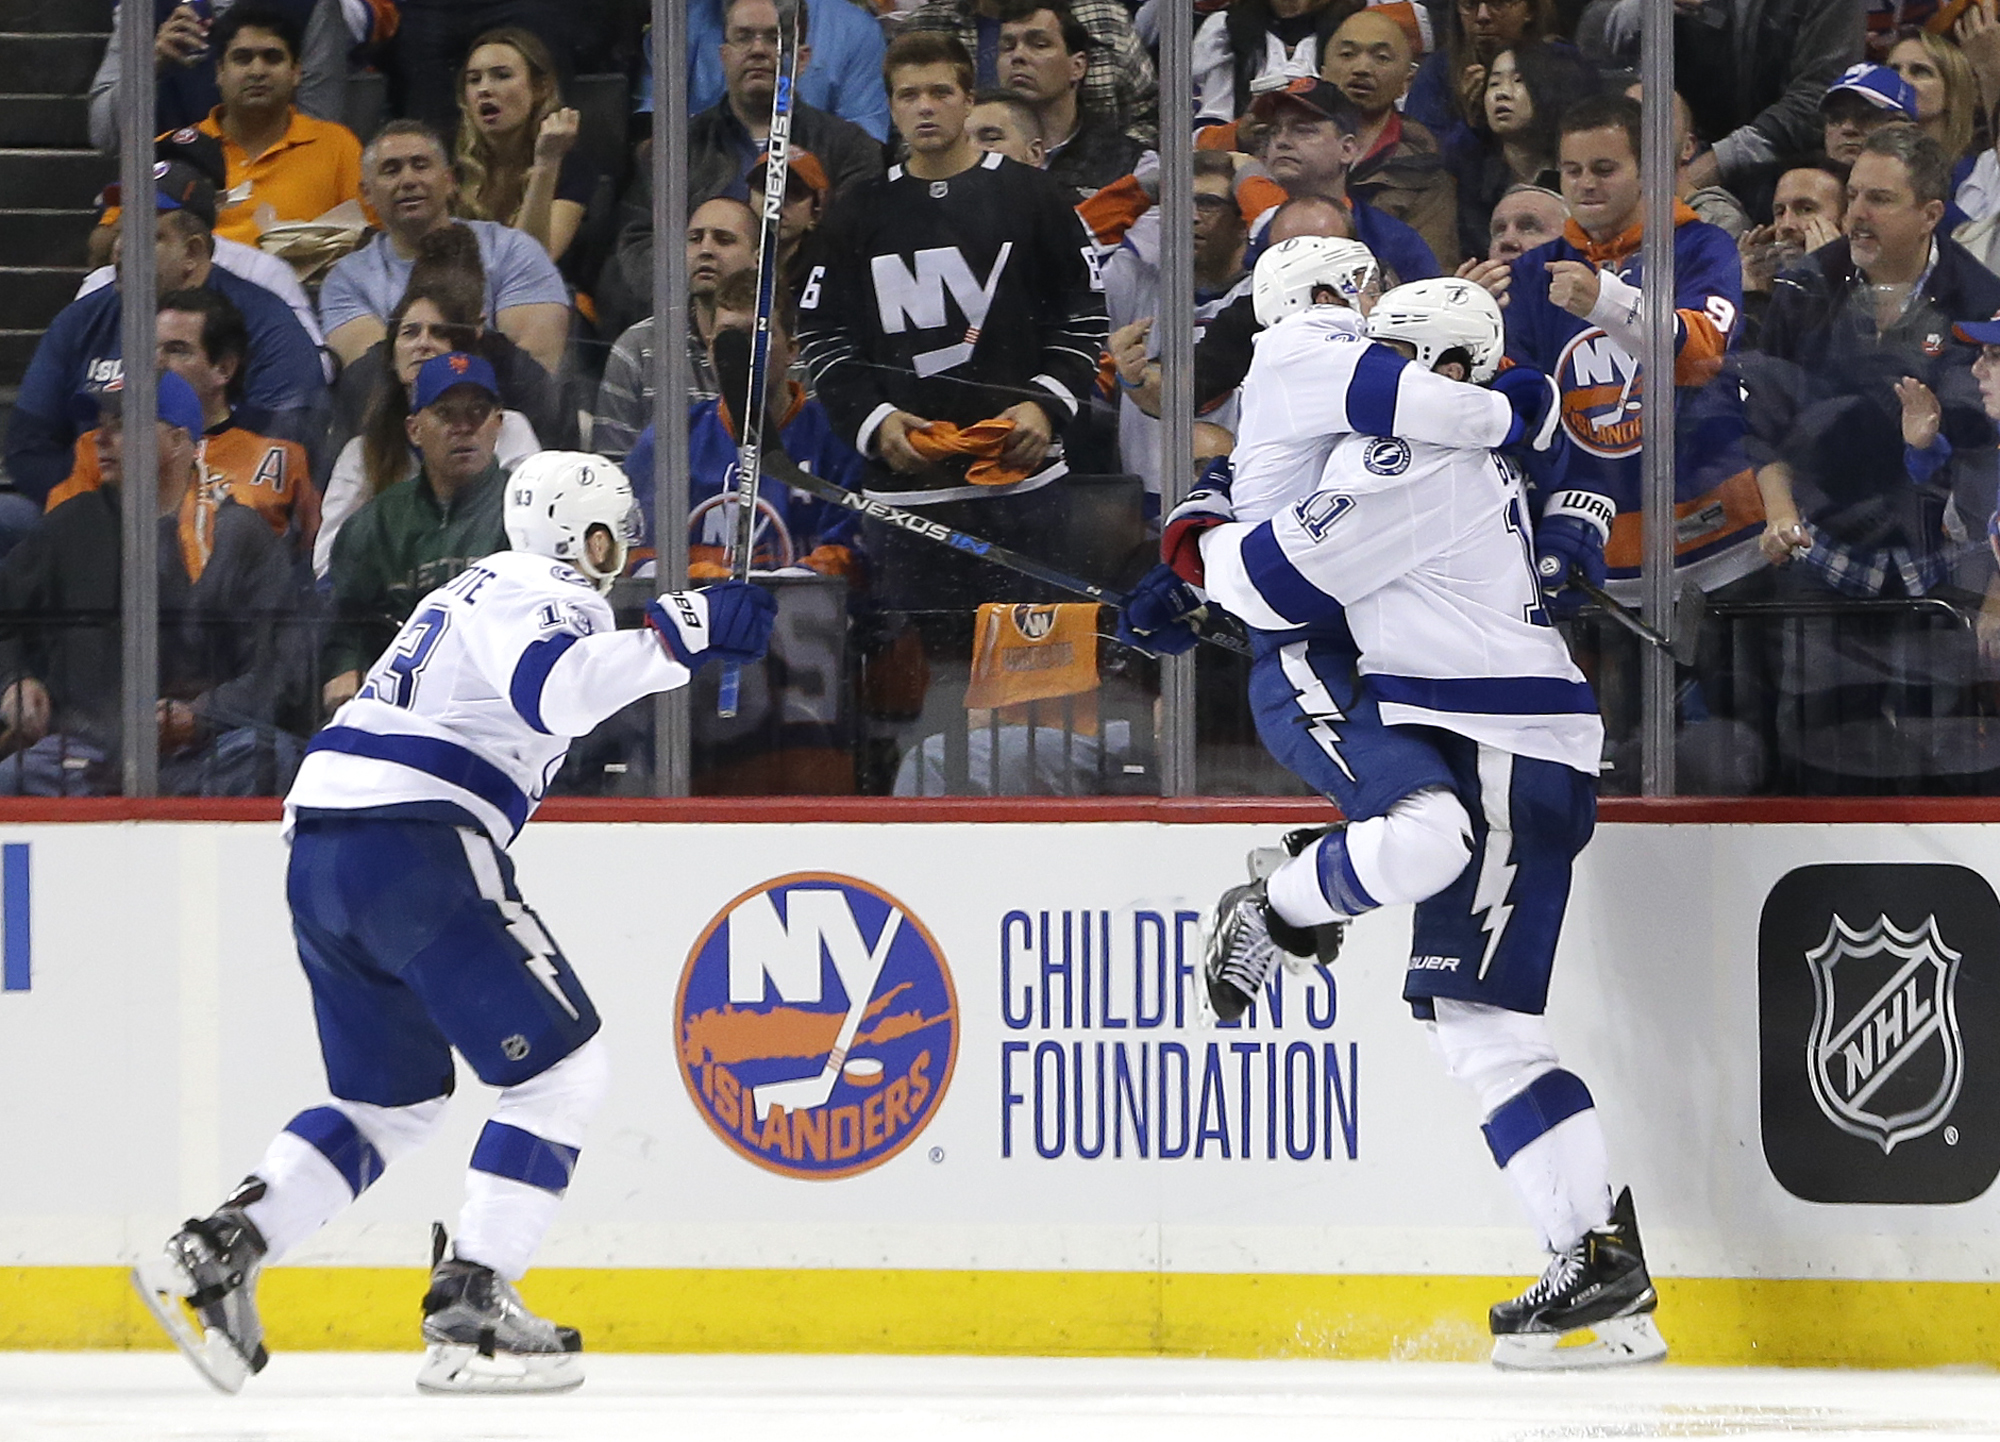 Tampa Bay Lightning right wing Ryan Callahan, center, jumps into the arms of center Brian Boyle (11) as Tampa Bay Lightning center Cedric Paquette (13) rushes in after Boyle scored the game-winning goal against the New York Islanders during the overtime p